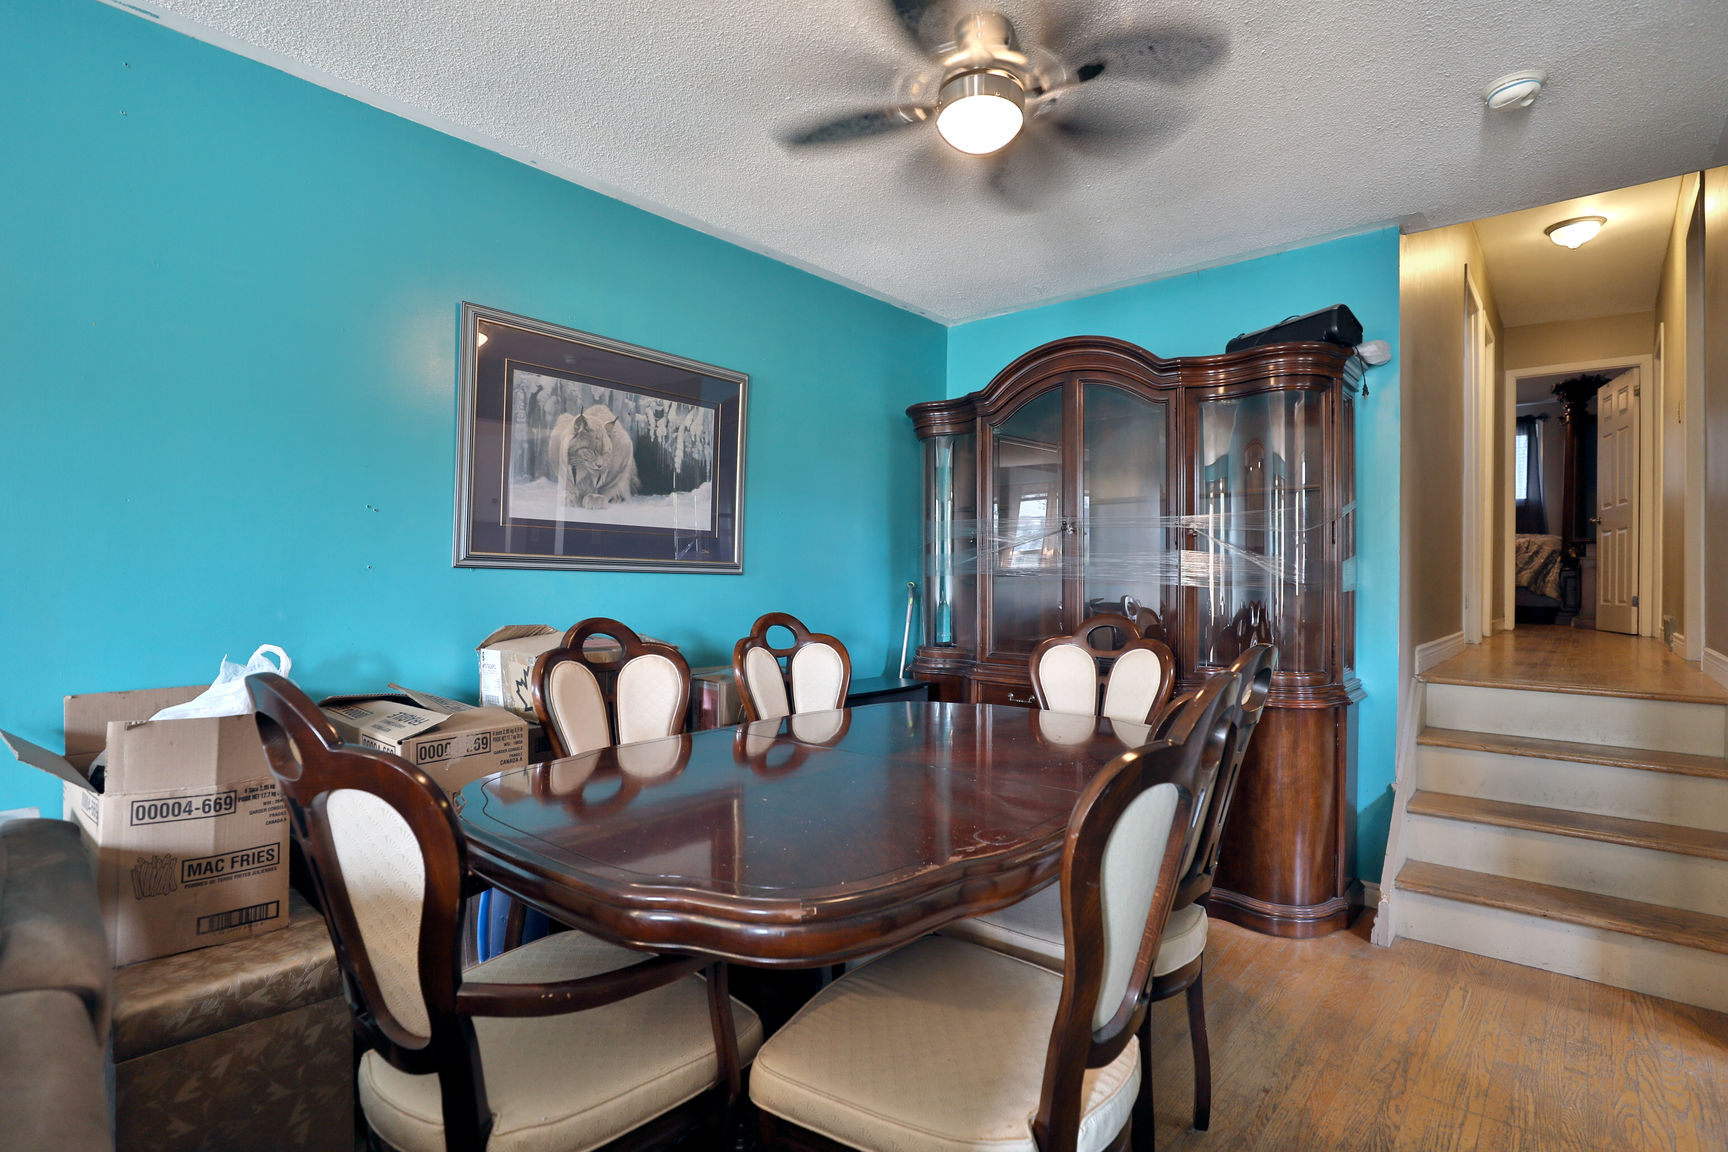 07 - Recently SOLD in Rosedale